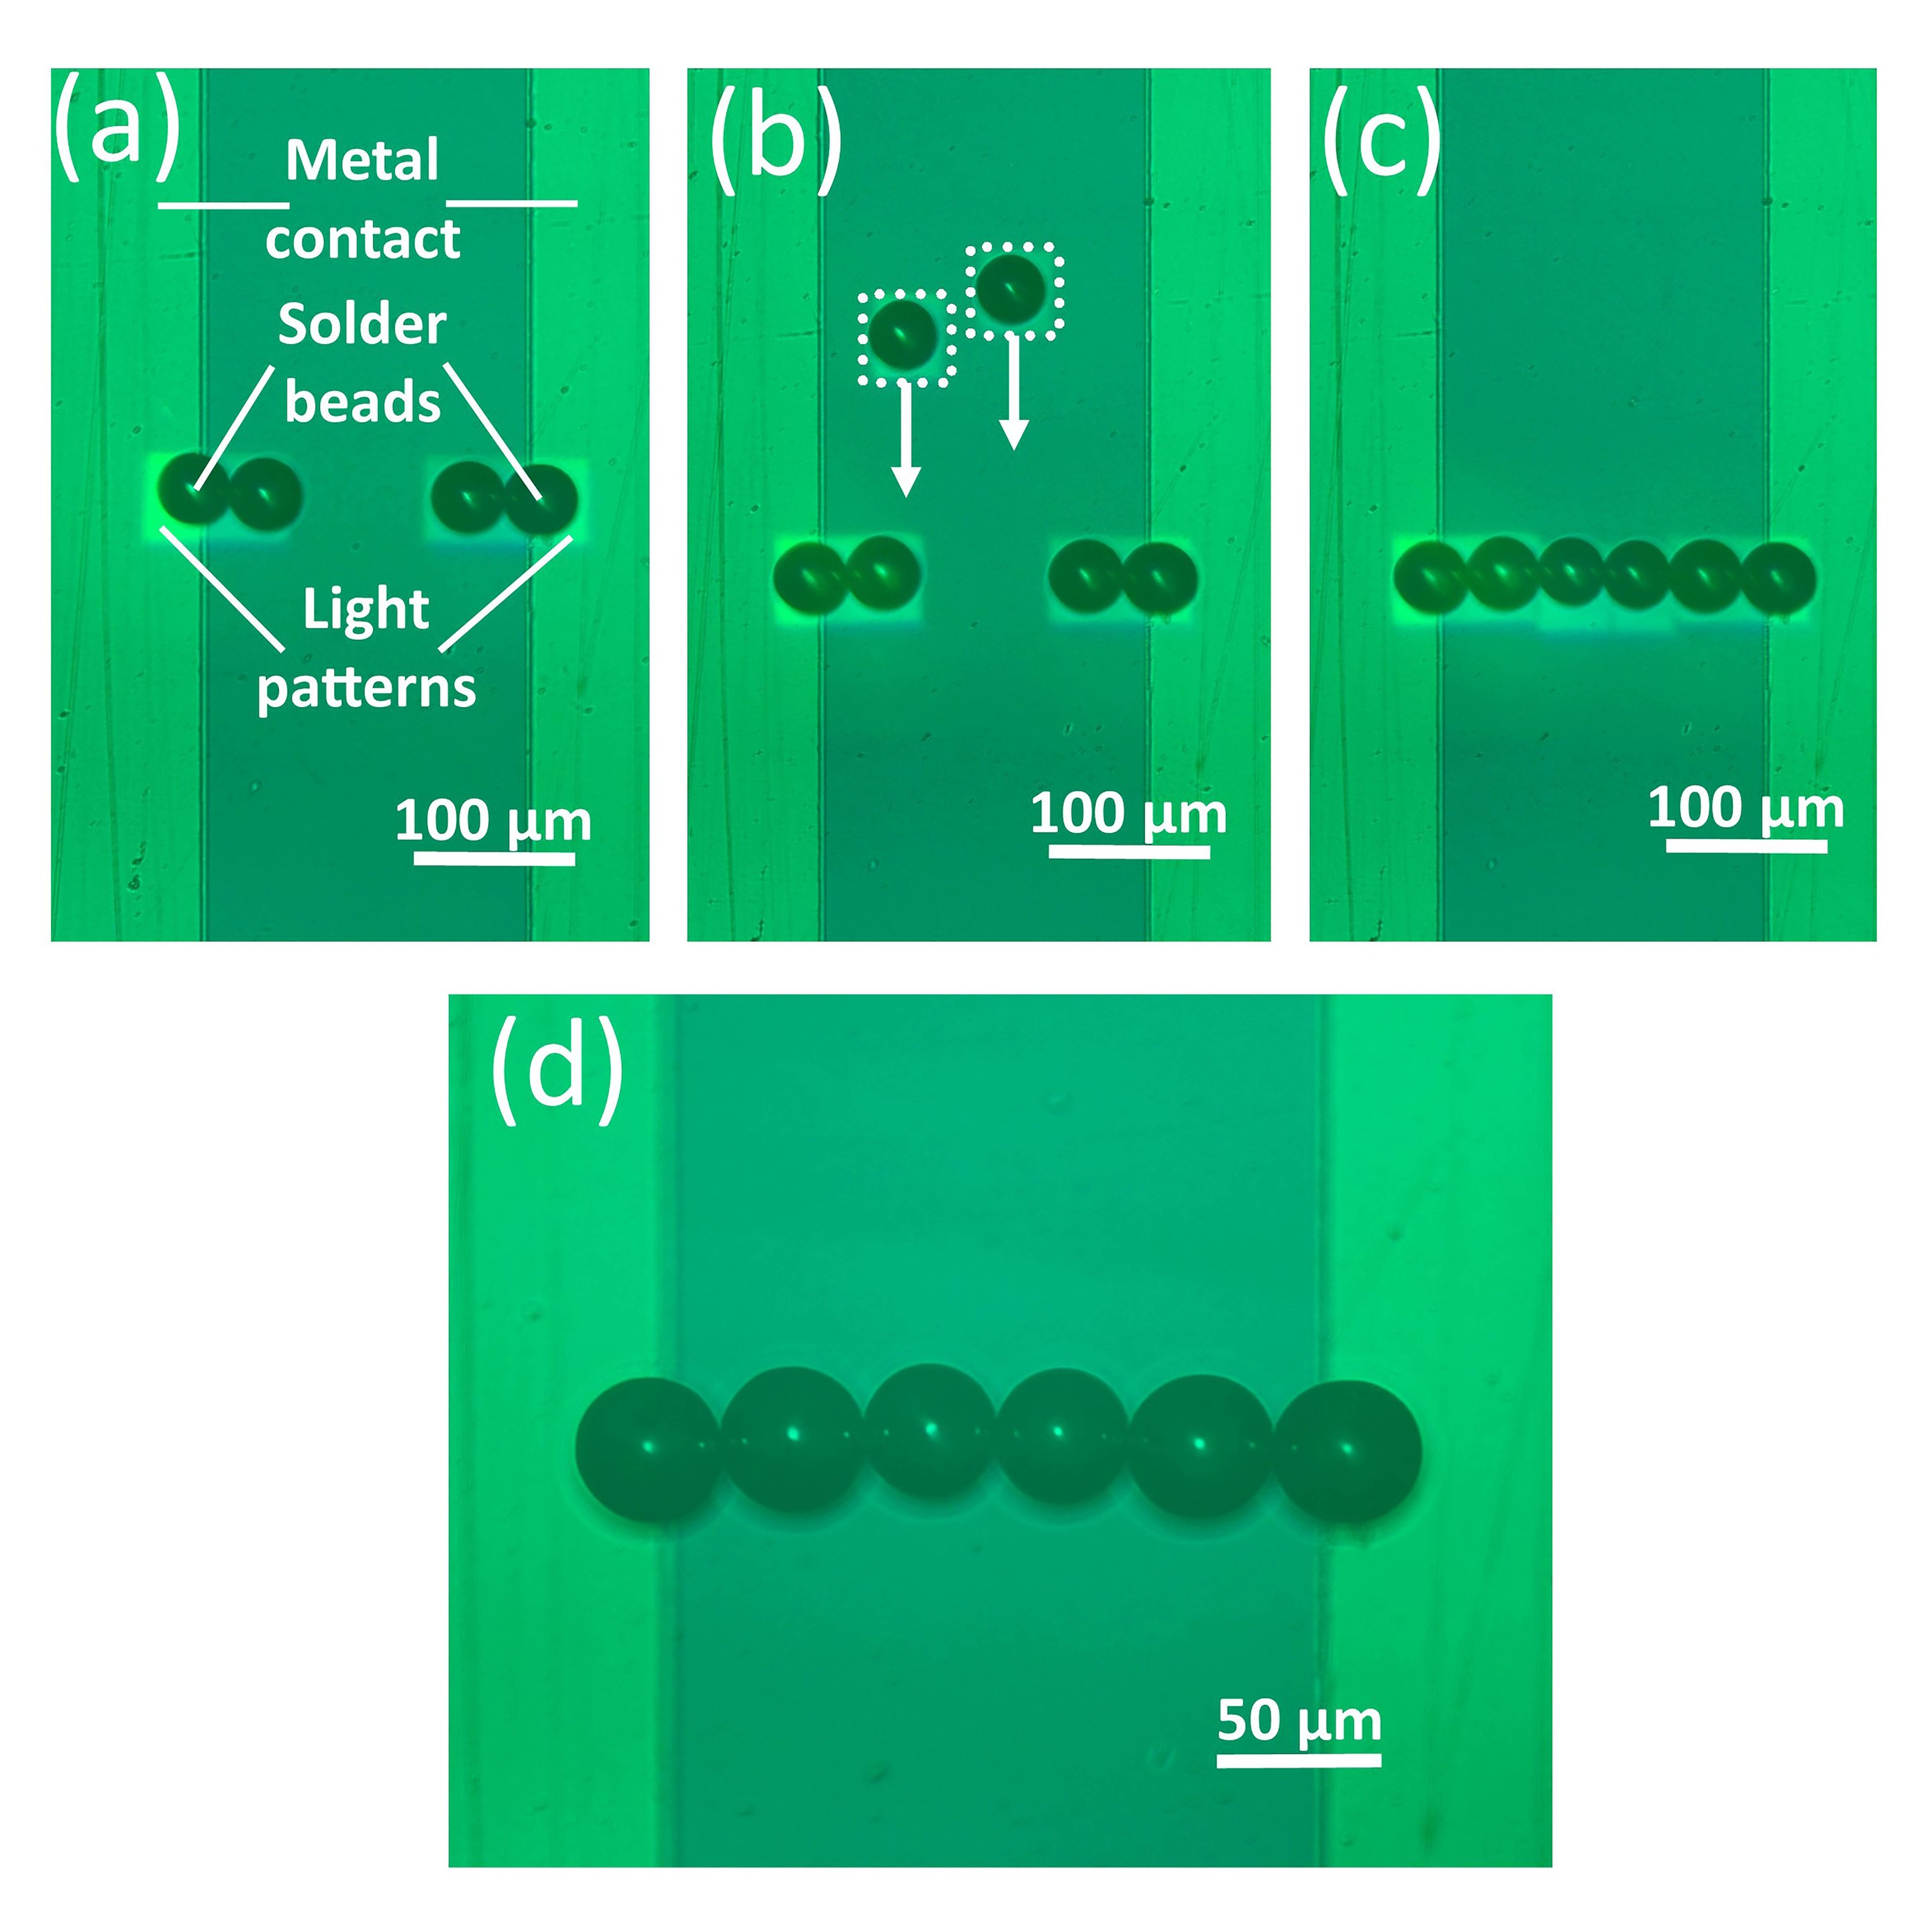 Researchers used optoelectronic tweezers to assemble a line of solder  beads. By removing the liquid with a freeze-drying approach, the assembled  beads stay ...